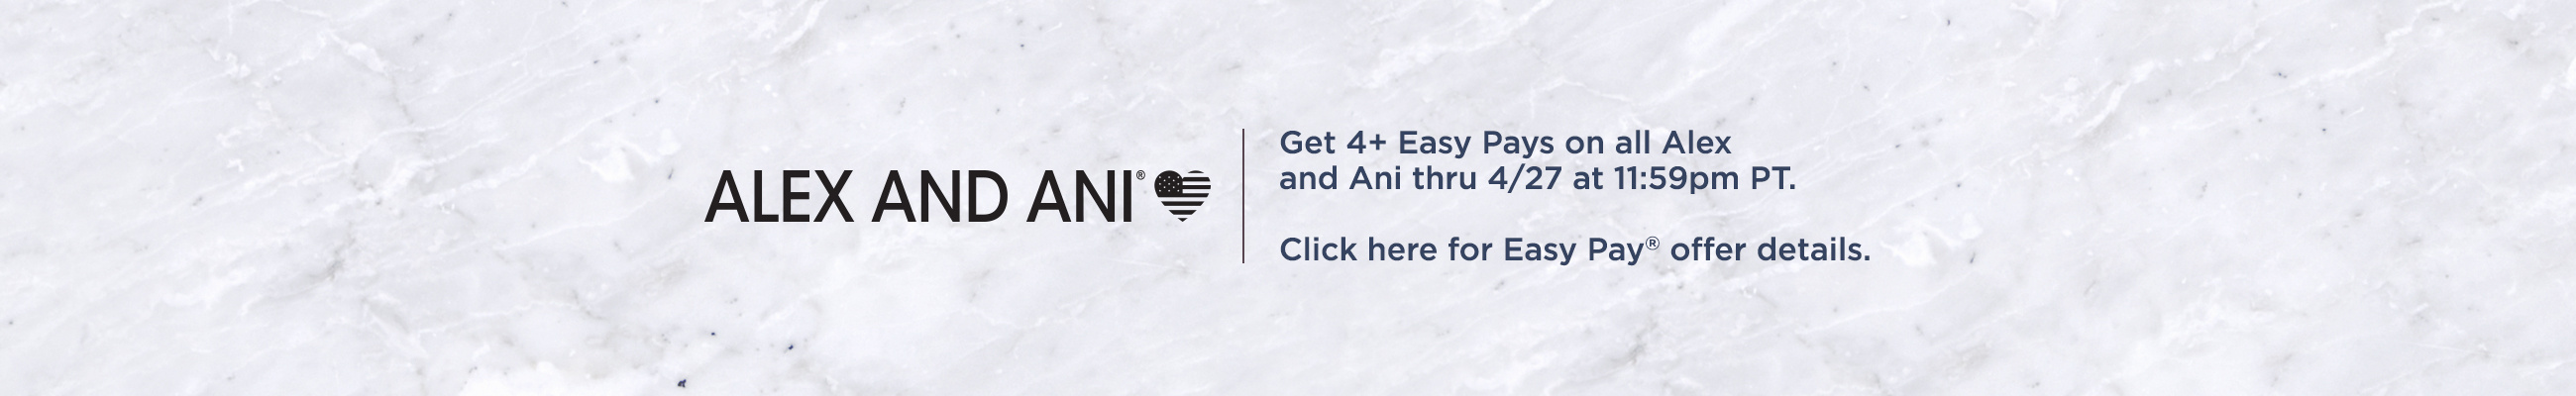 Alex and Ani Get 4+ Easy Pays on all Alex and Ani thru 4/27 at 11:59pm PT.   Click here for Easy Pay® offer details.